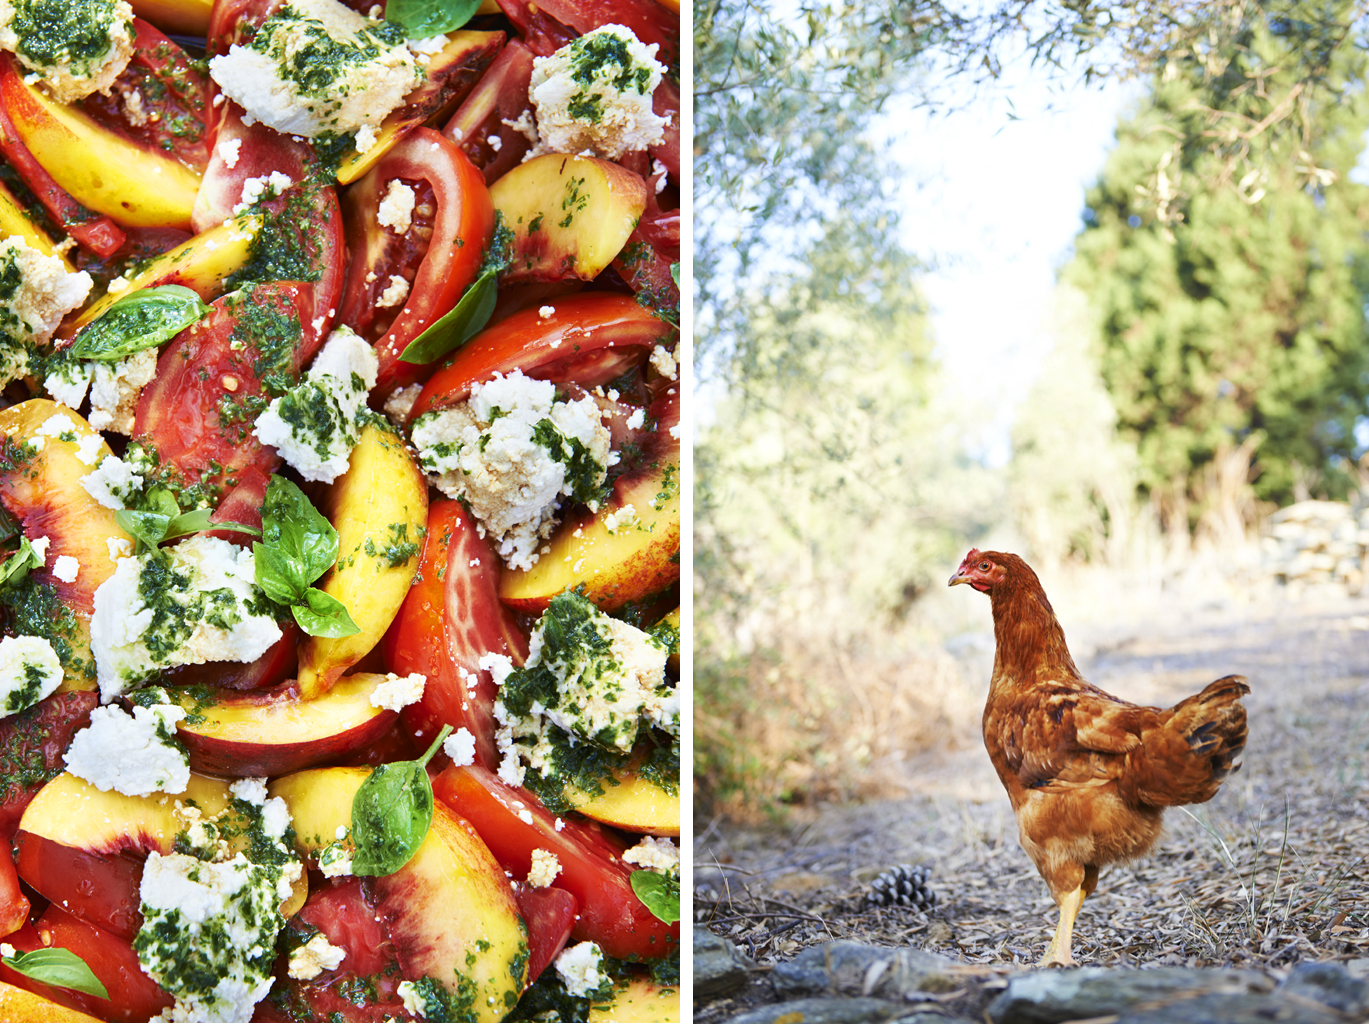 Tomato tomatoes nectarine feta basil salad oil olive close up cook book silver island cookbook recipe chicken free range retreat rustic pine cone retreat greece travel london food photography photographer still life travelling